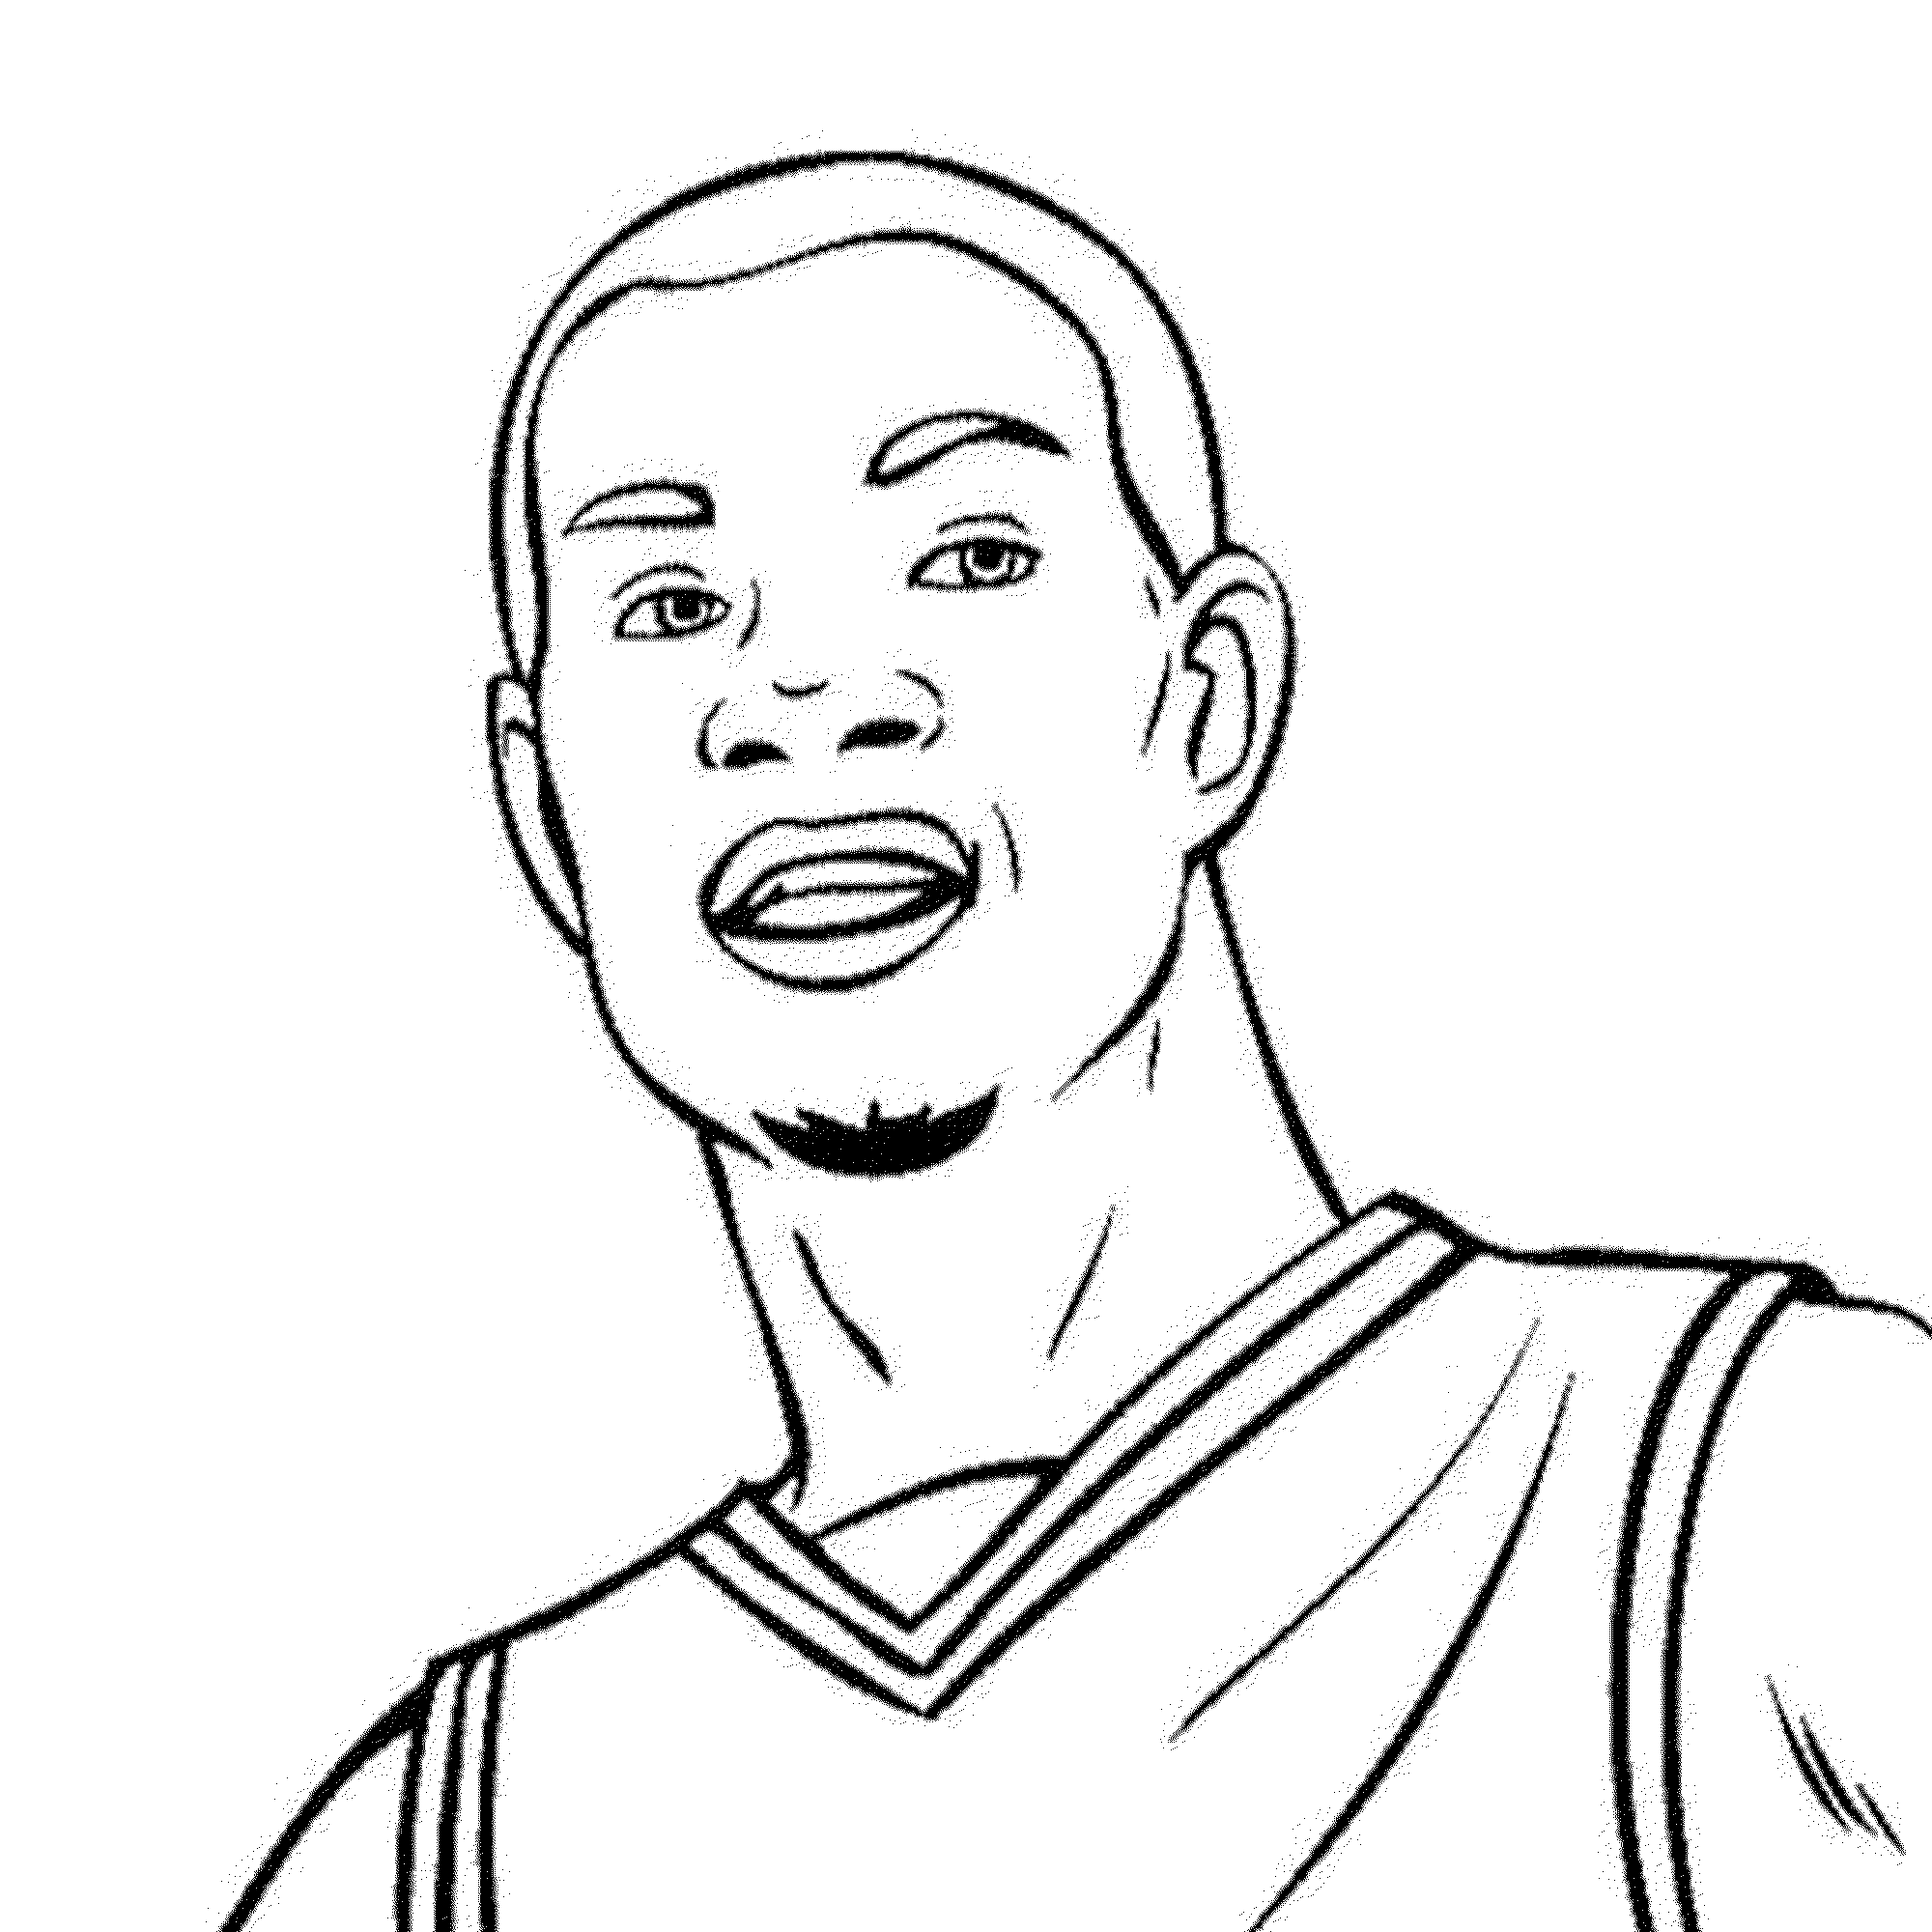 basketball player coloring pages basketball player drawing at getdrawings free download basketball coloring pages player